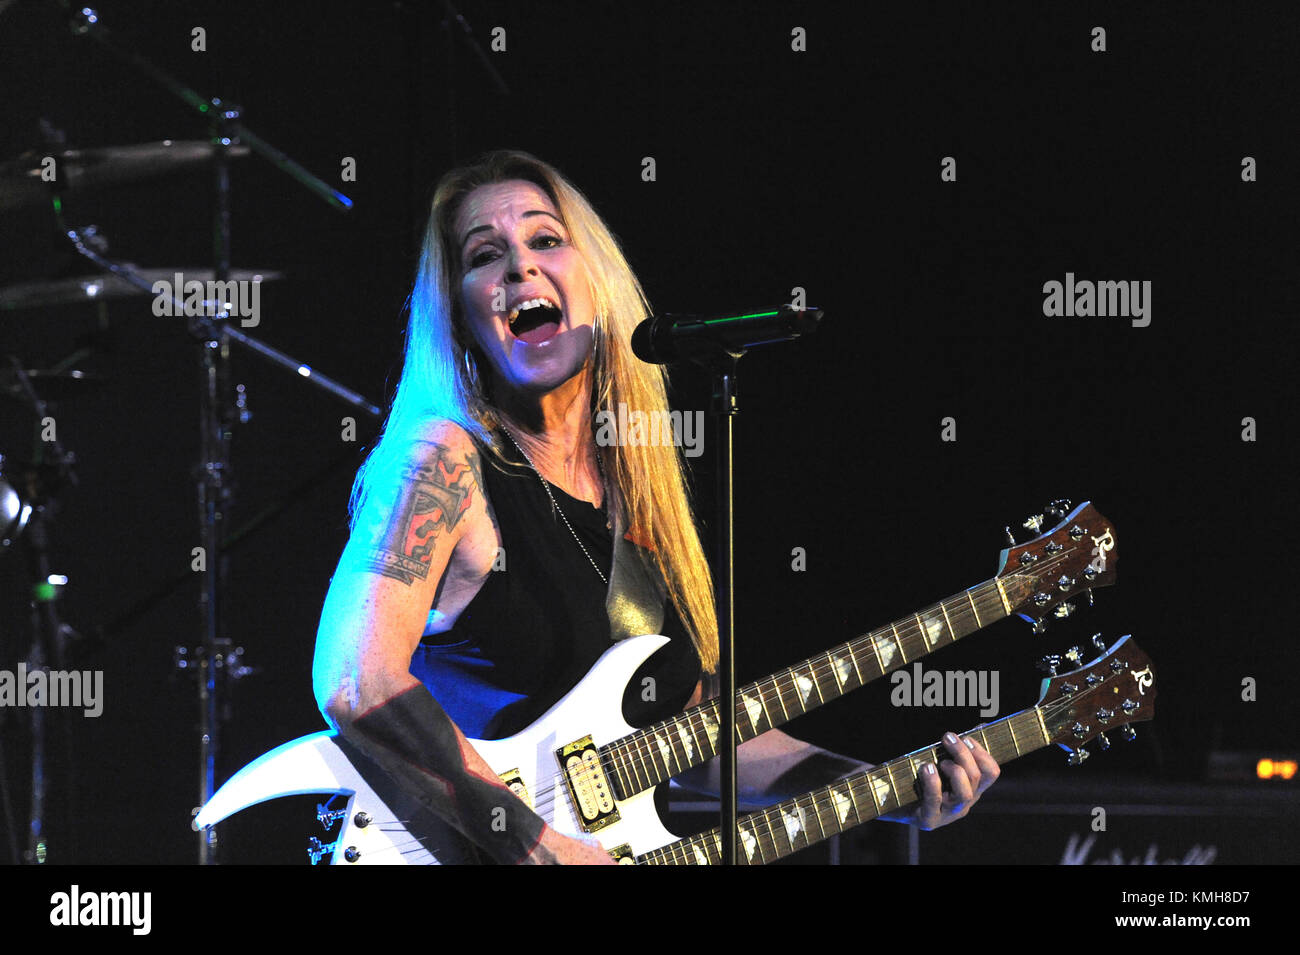 Lombard Illinois December Lita Ford Performing At The House Alamy Com